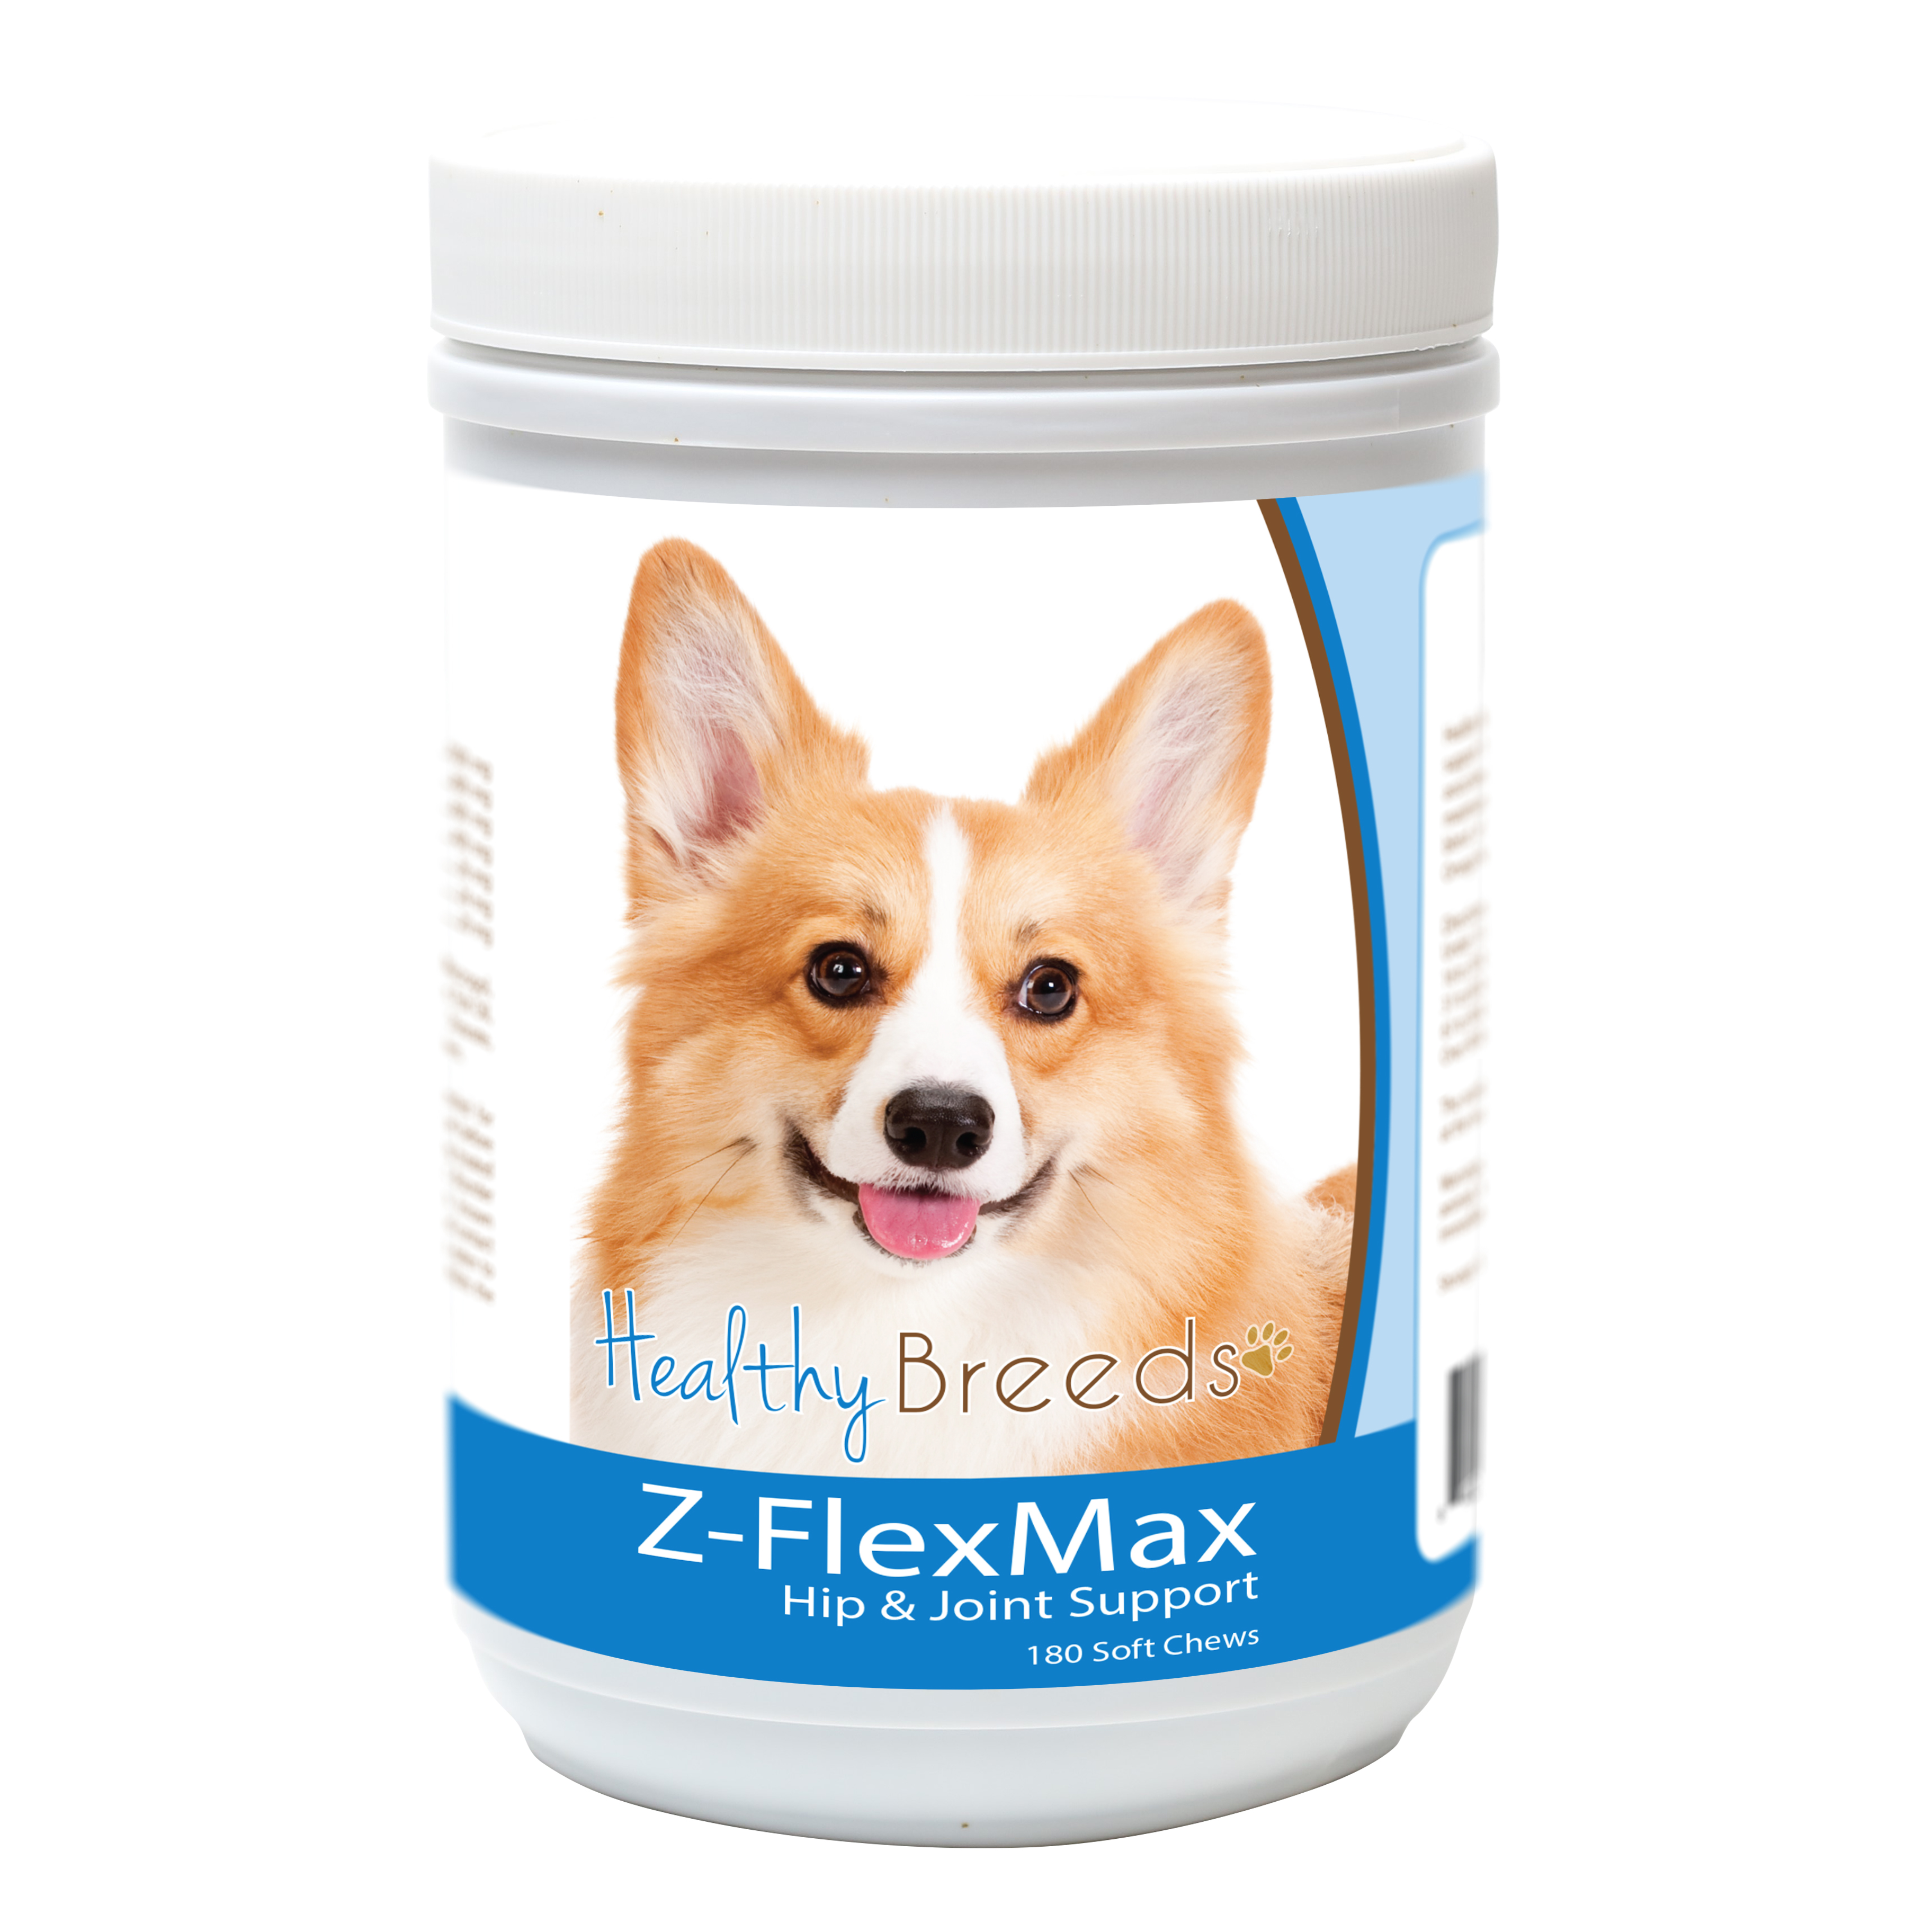 Healthy Breeds Pembroke Welsh Corgi Z-Flex Max Dog Hip and Joint Support 180 Count